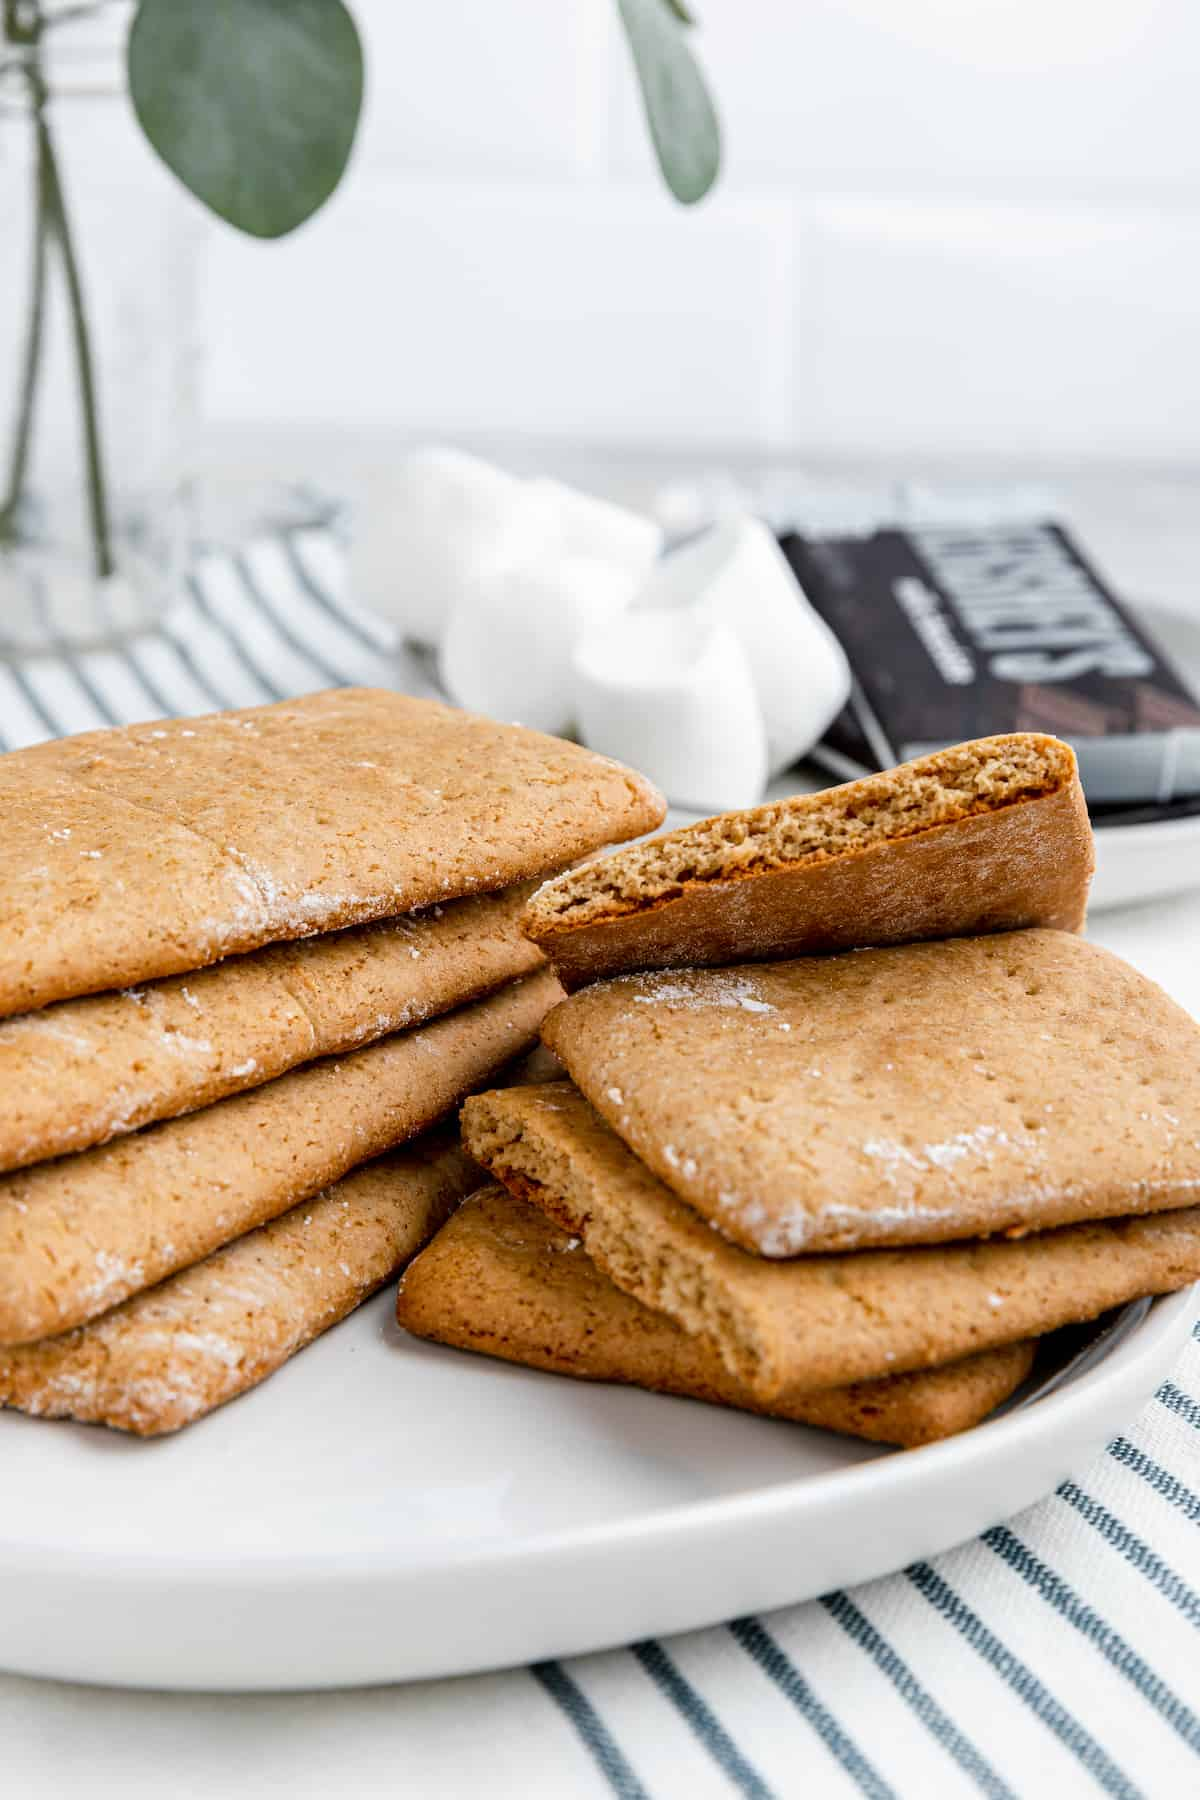 stacks of gluten-free homemade graham crackers on a white plate